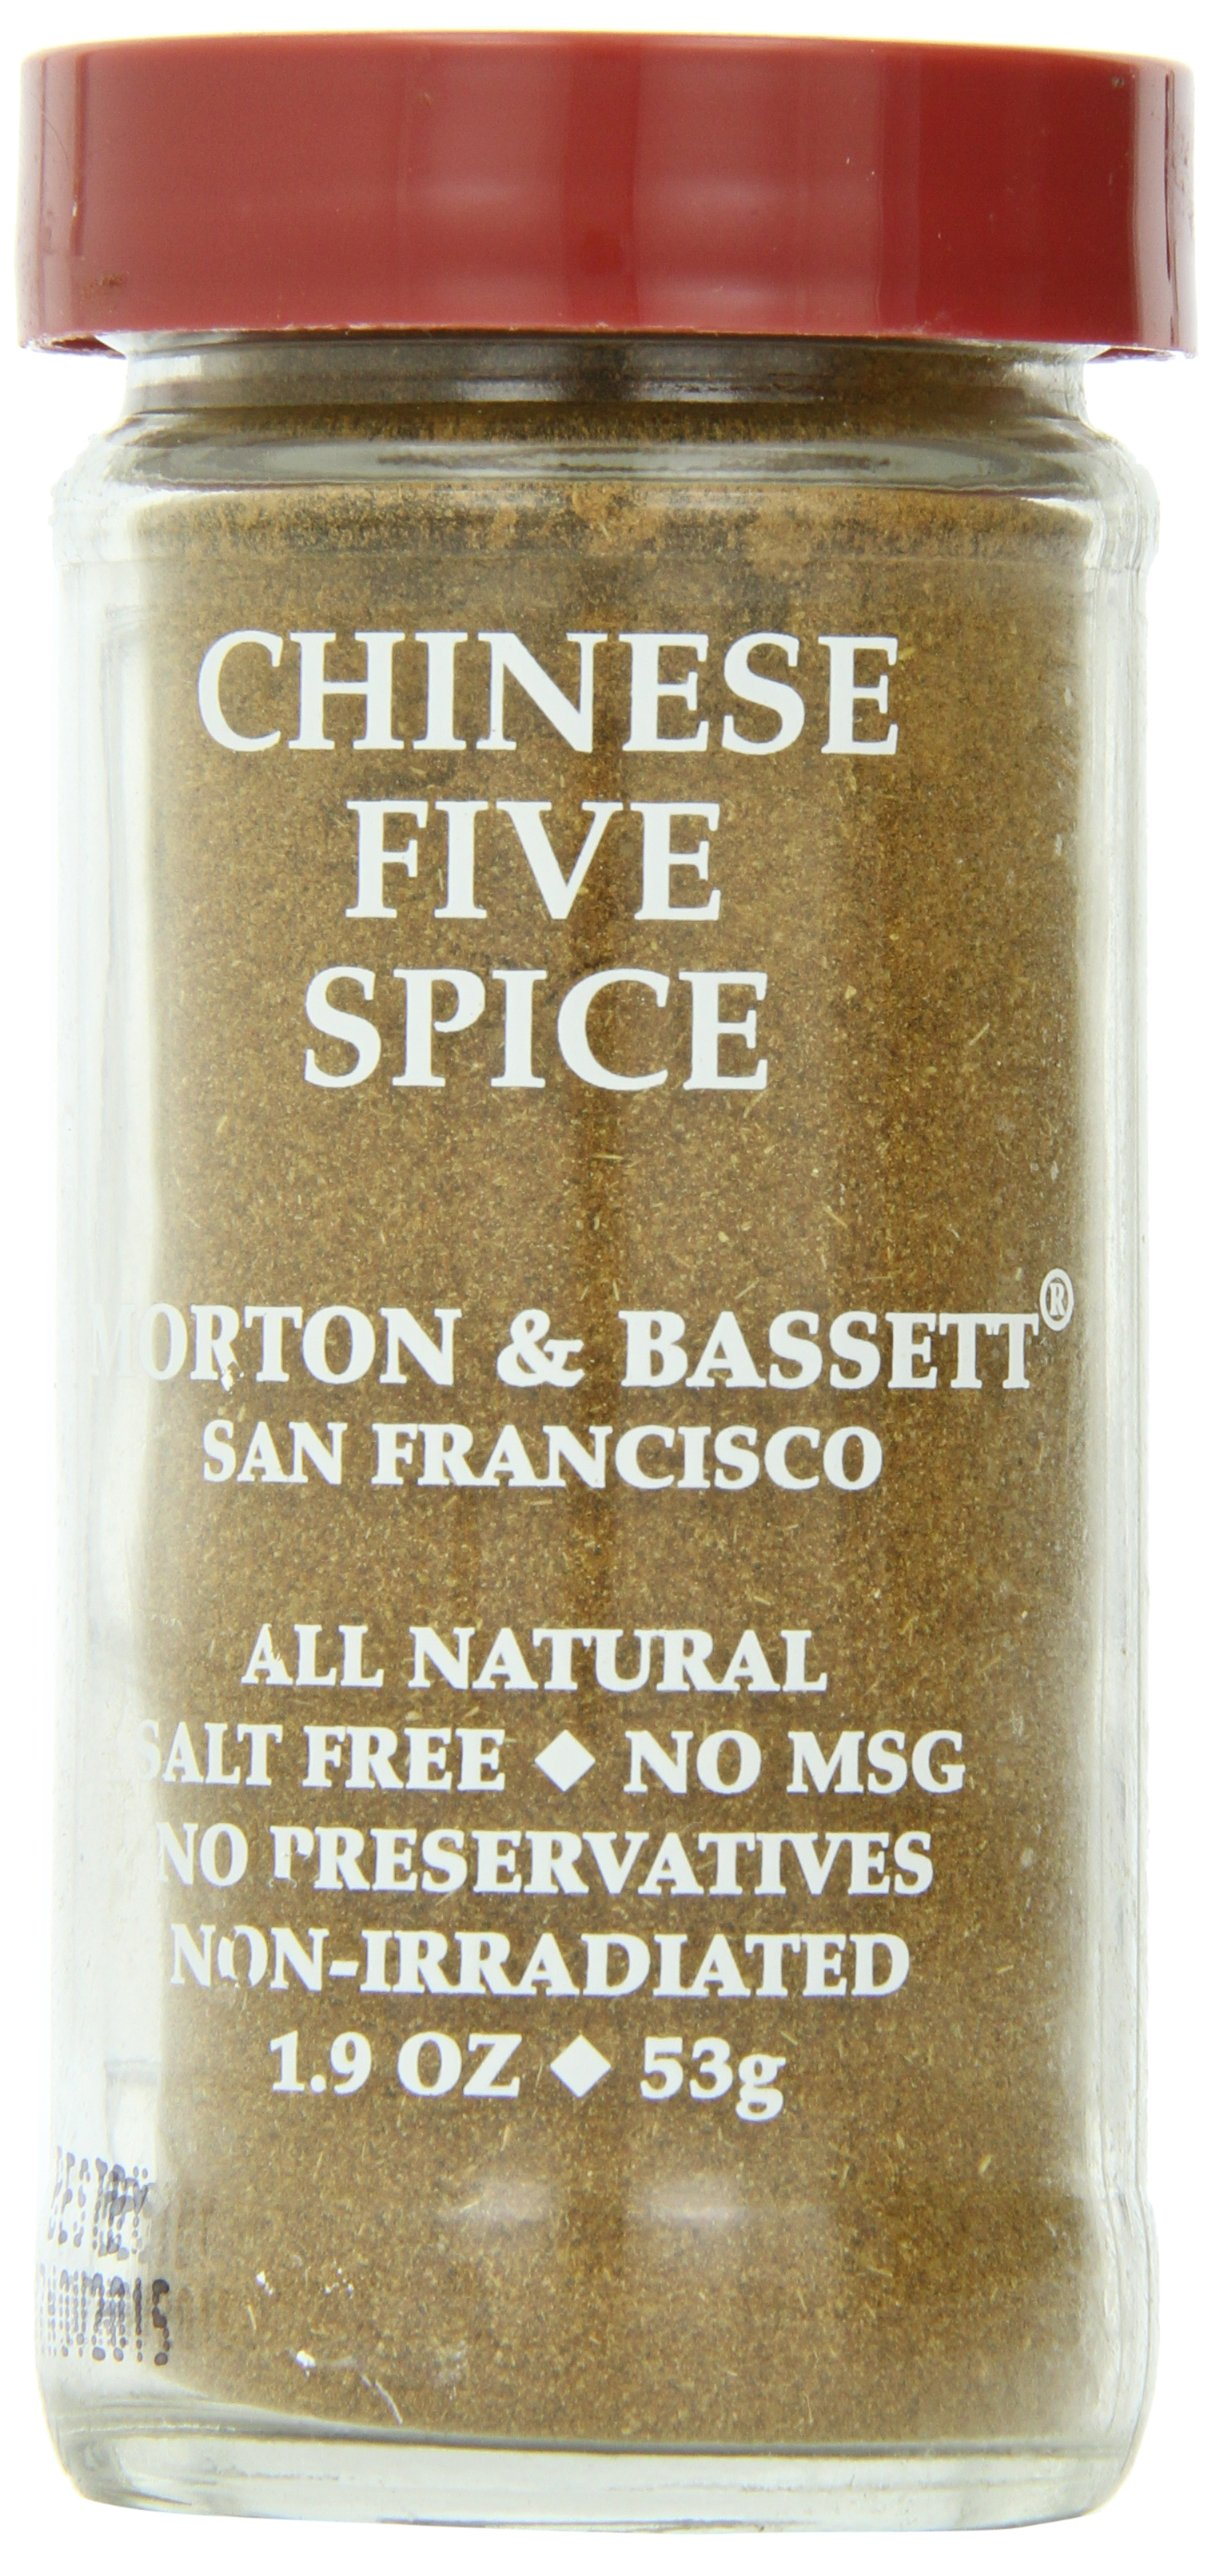 Morton & Basset Spices, Chinese Five Spice, 1.9 Ounce (Pack of 3)